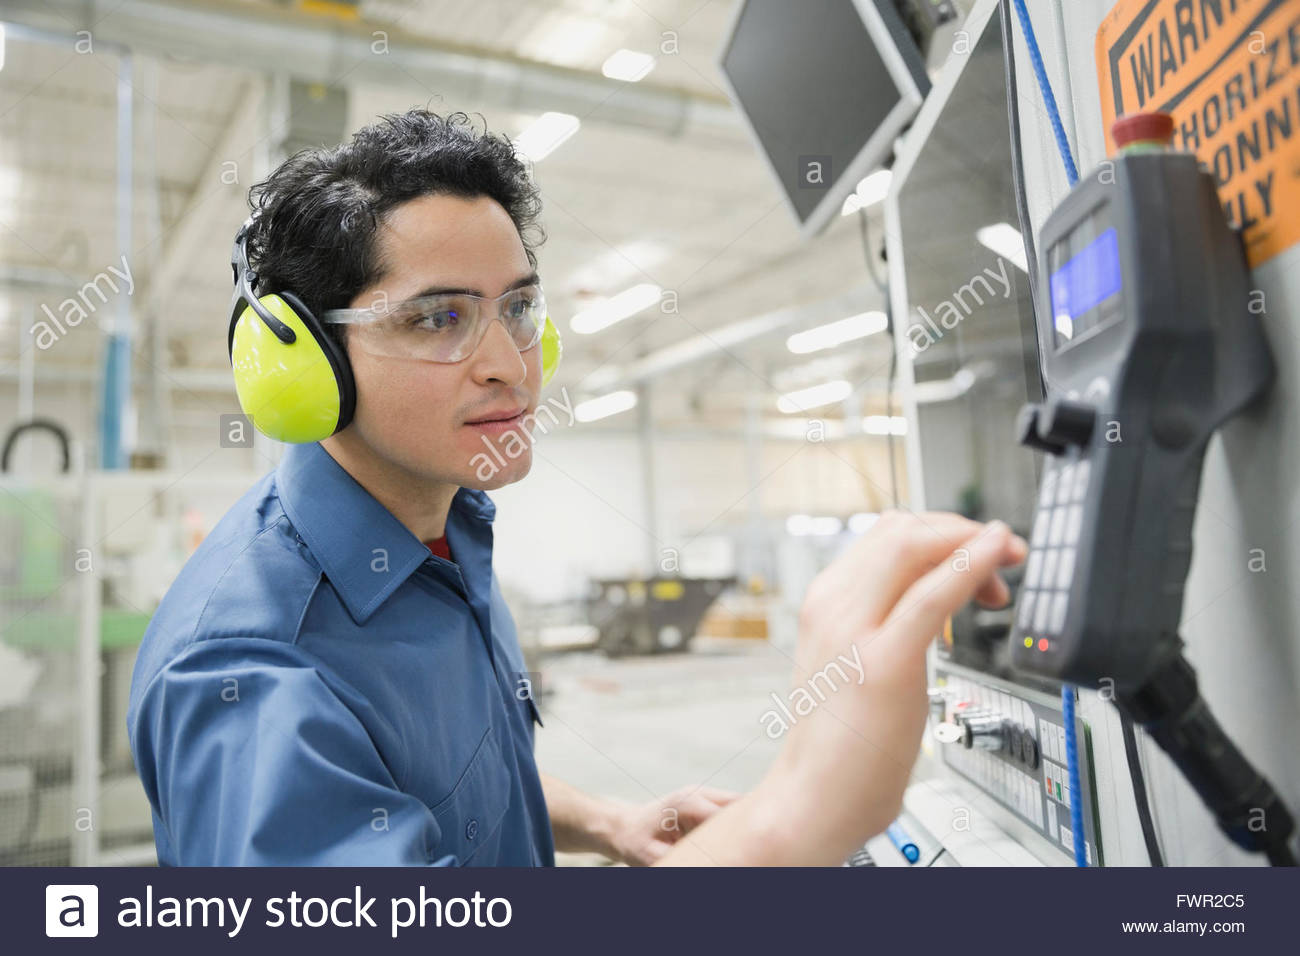 Worker in manufacturing factory - Stock Image